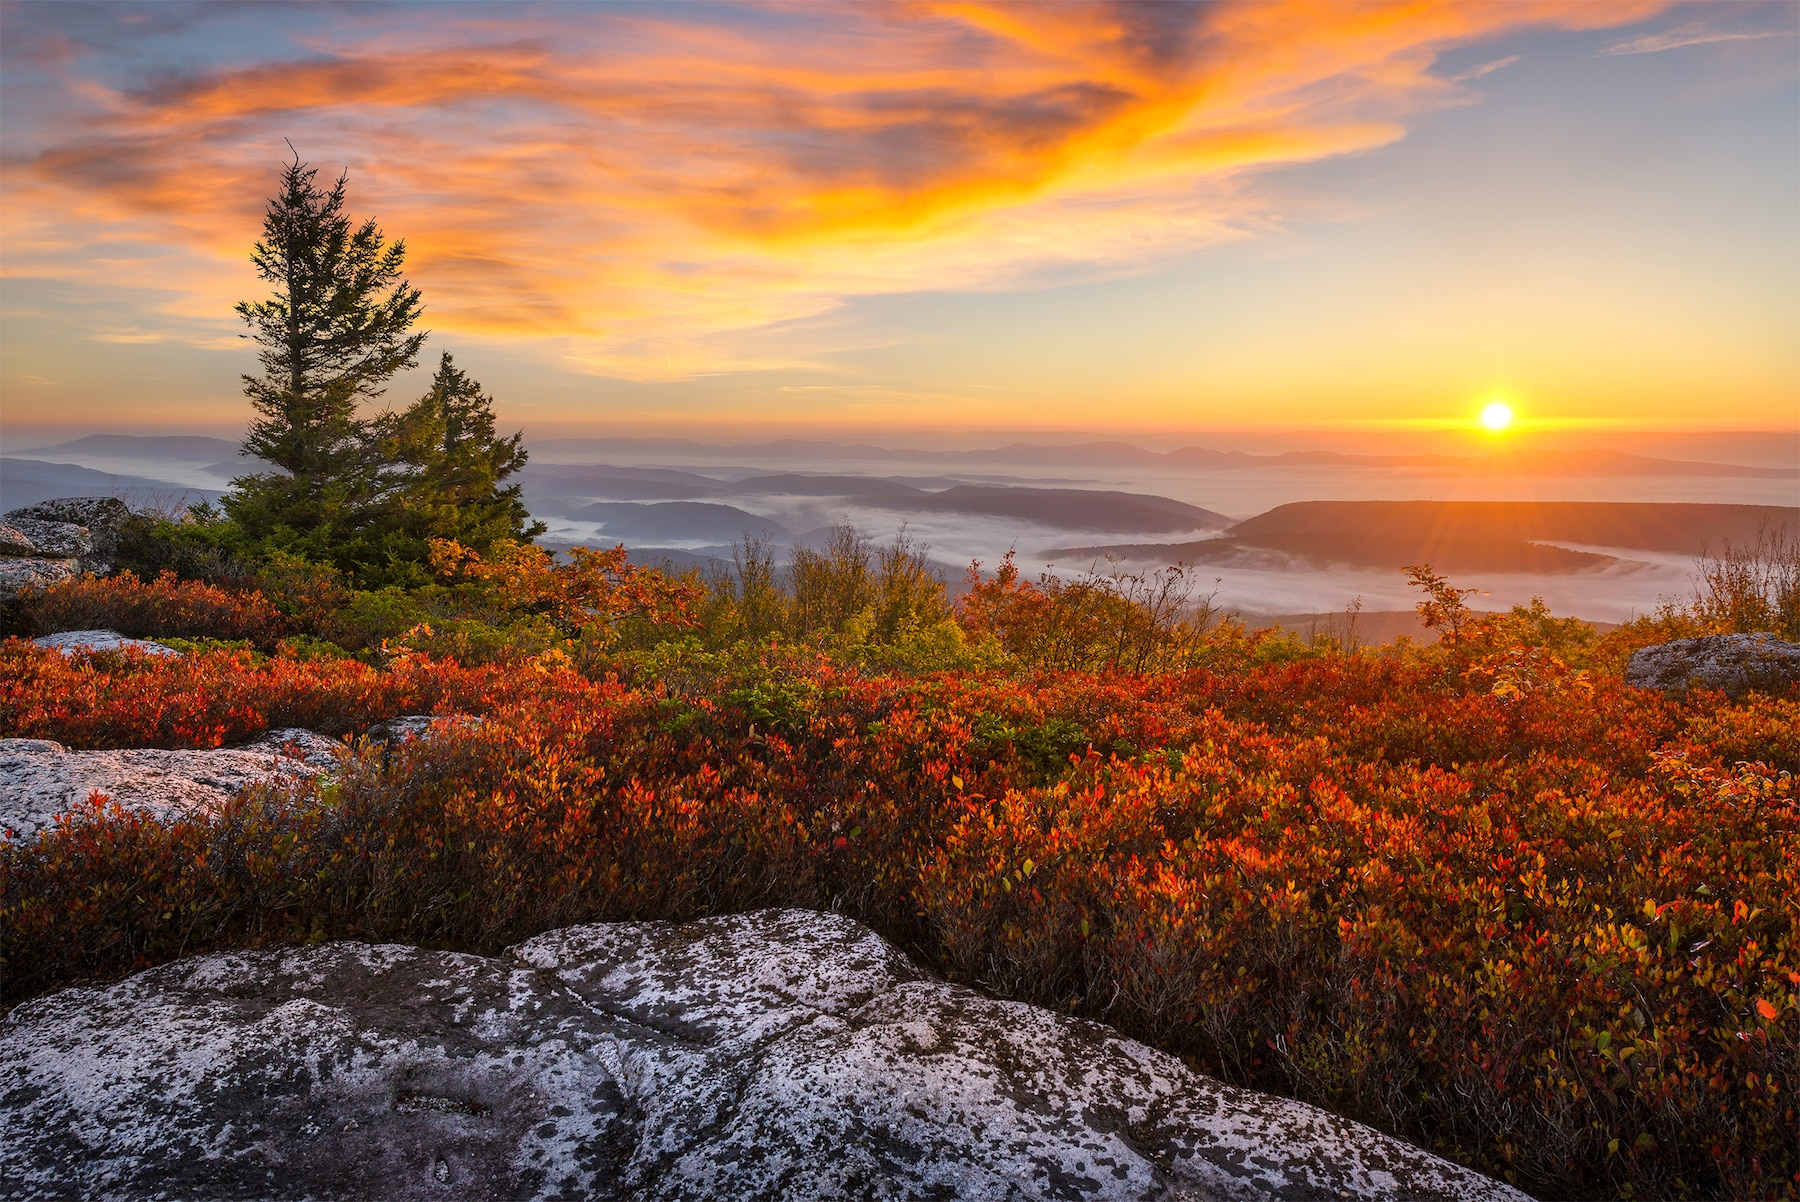 Dawn breaks over the Appalachian Mountains. Warm light spills over this autumn landscape at West Virginia's Dolly Sods.